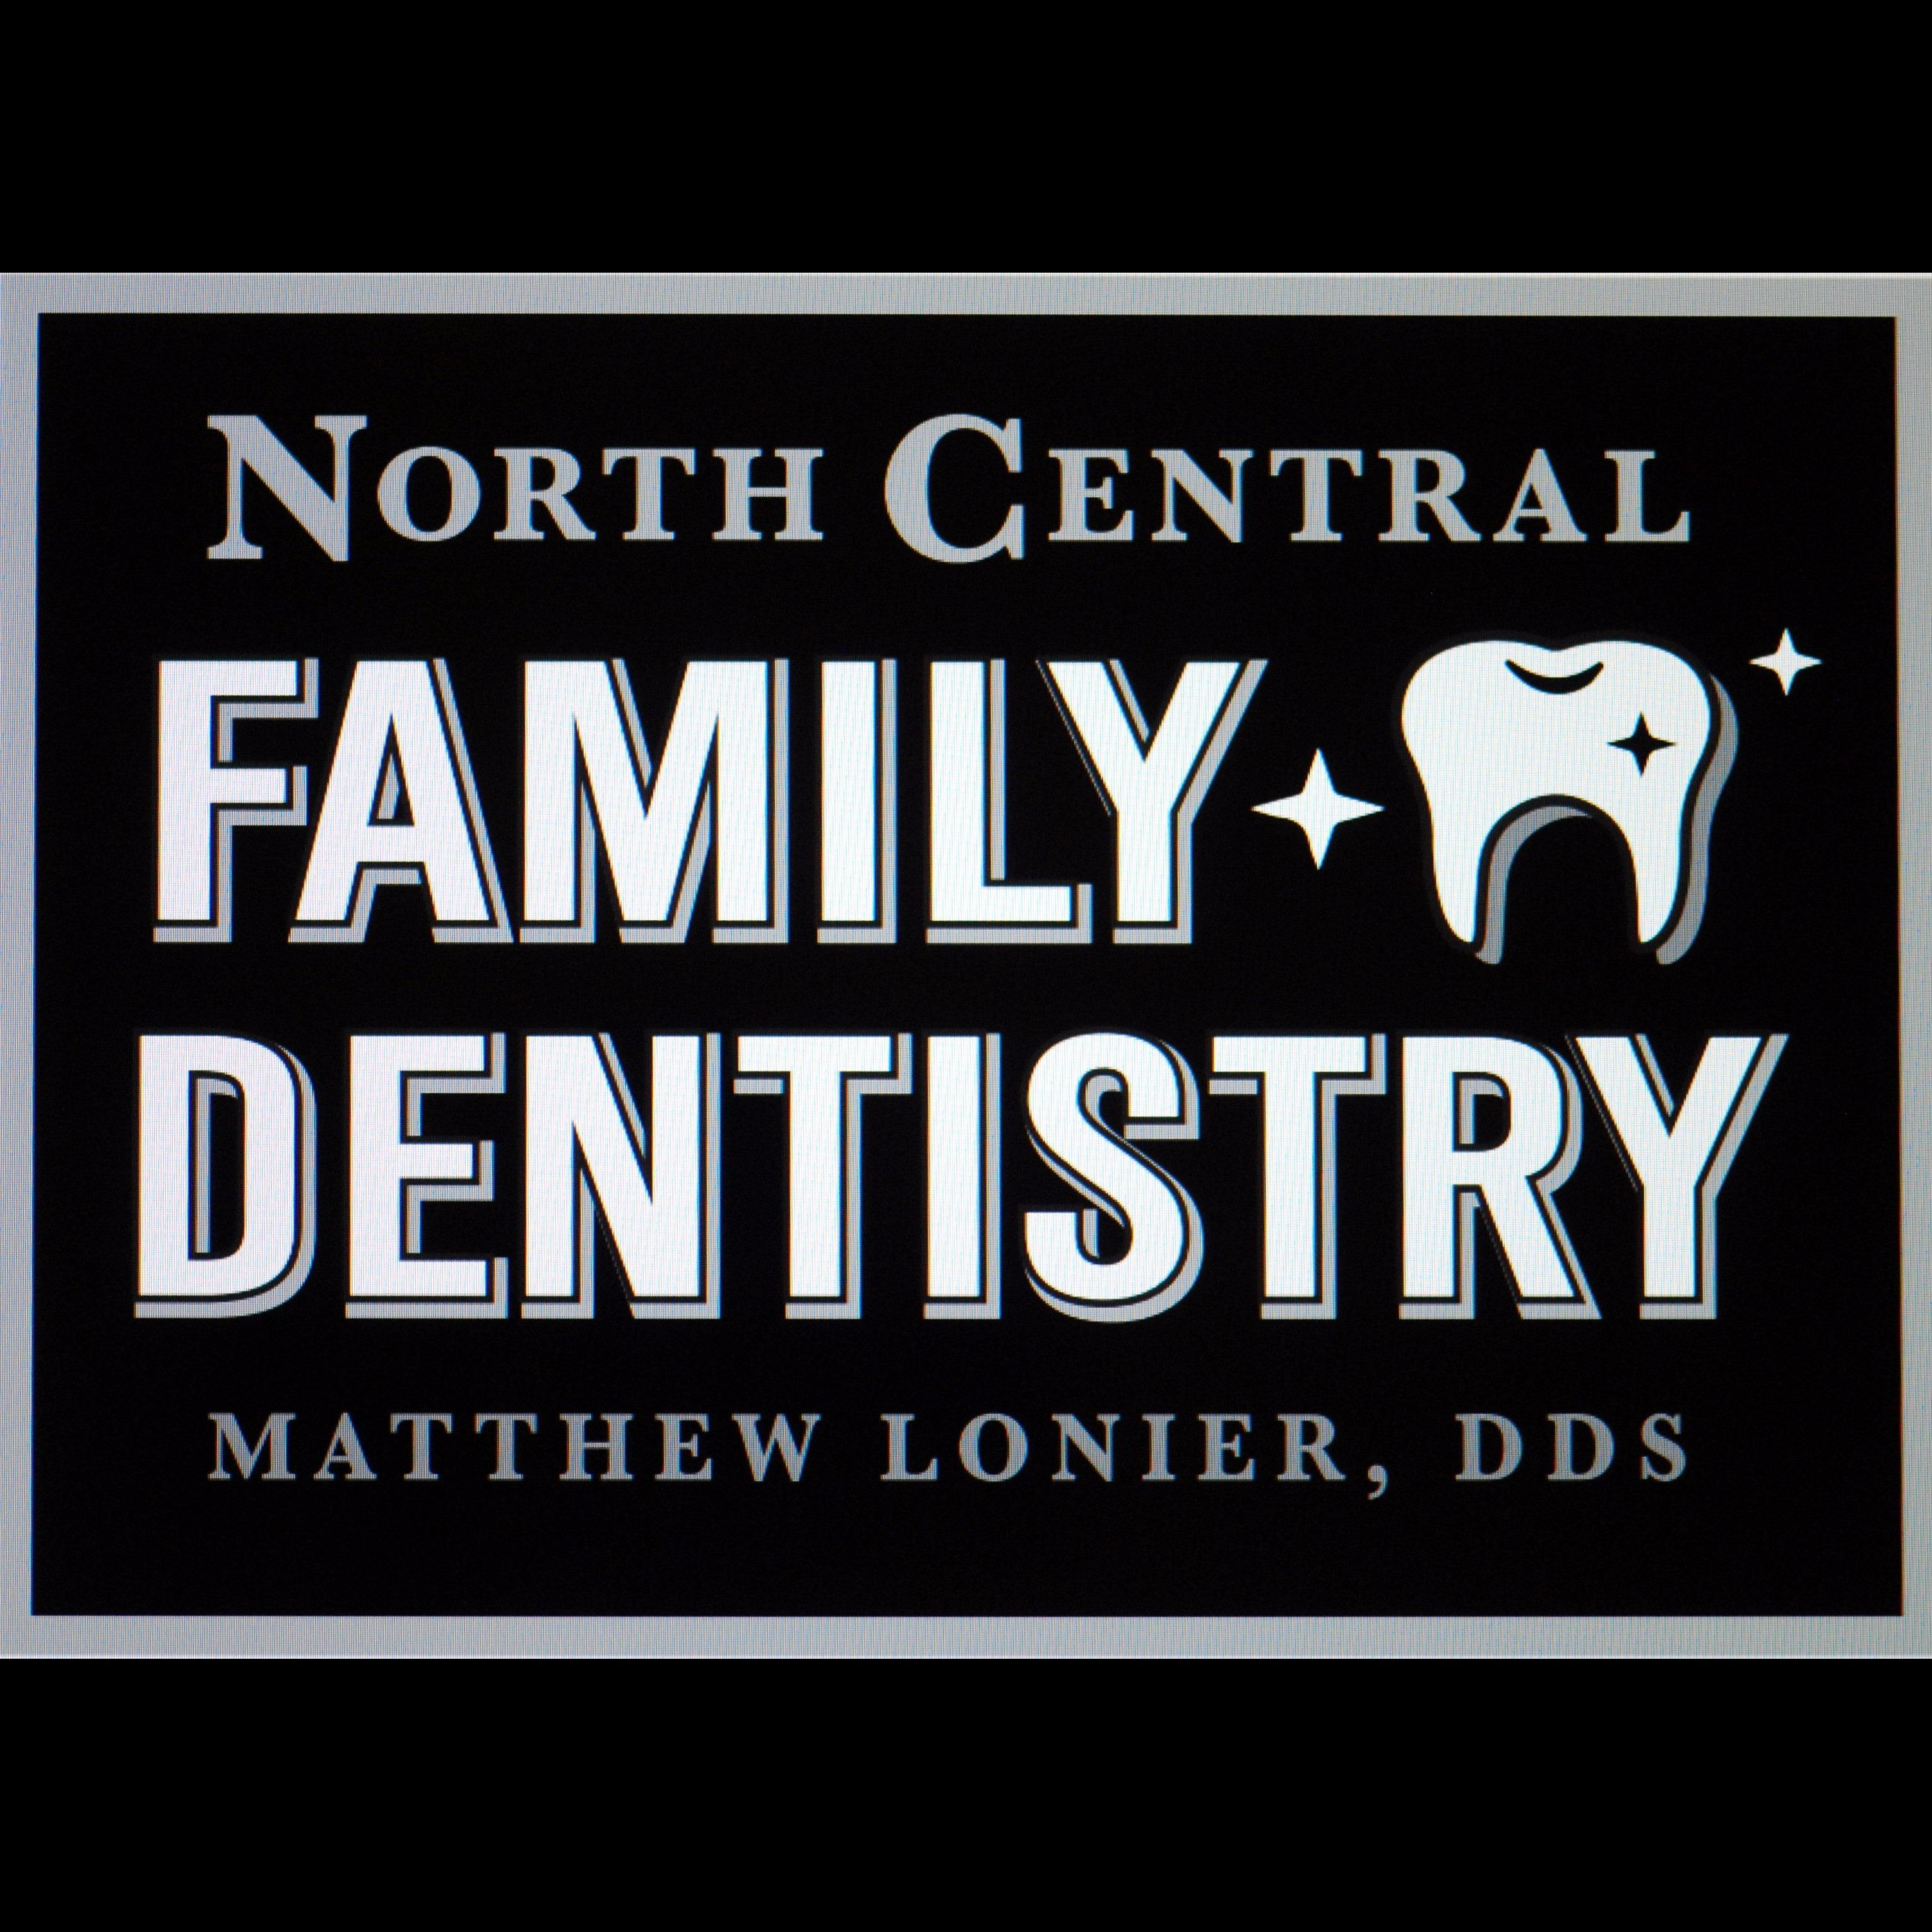 North Central Family Dentistry